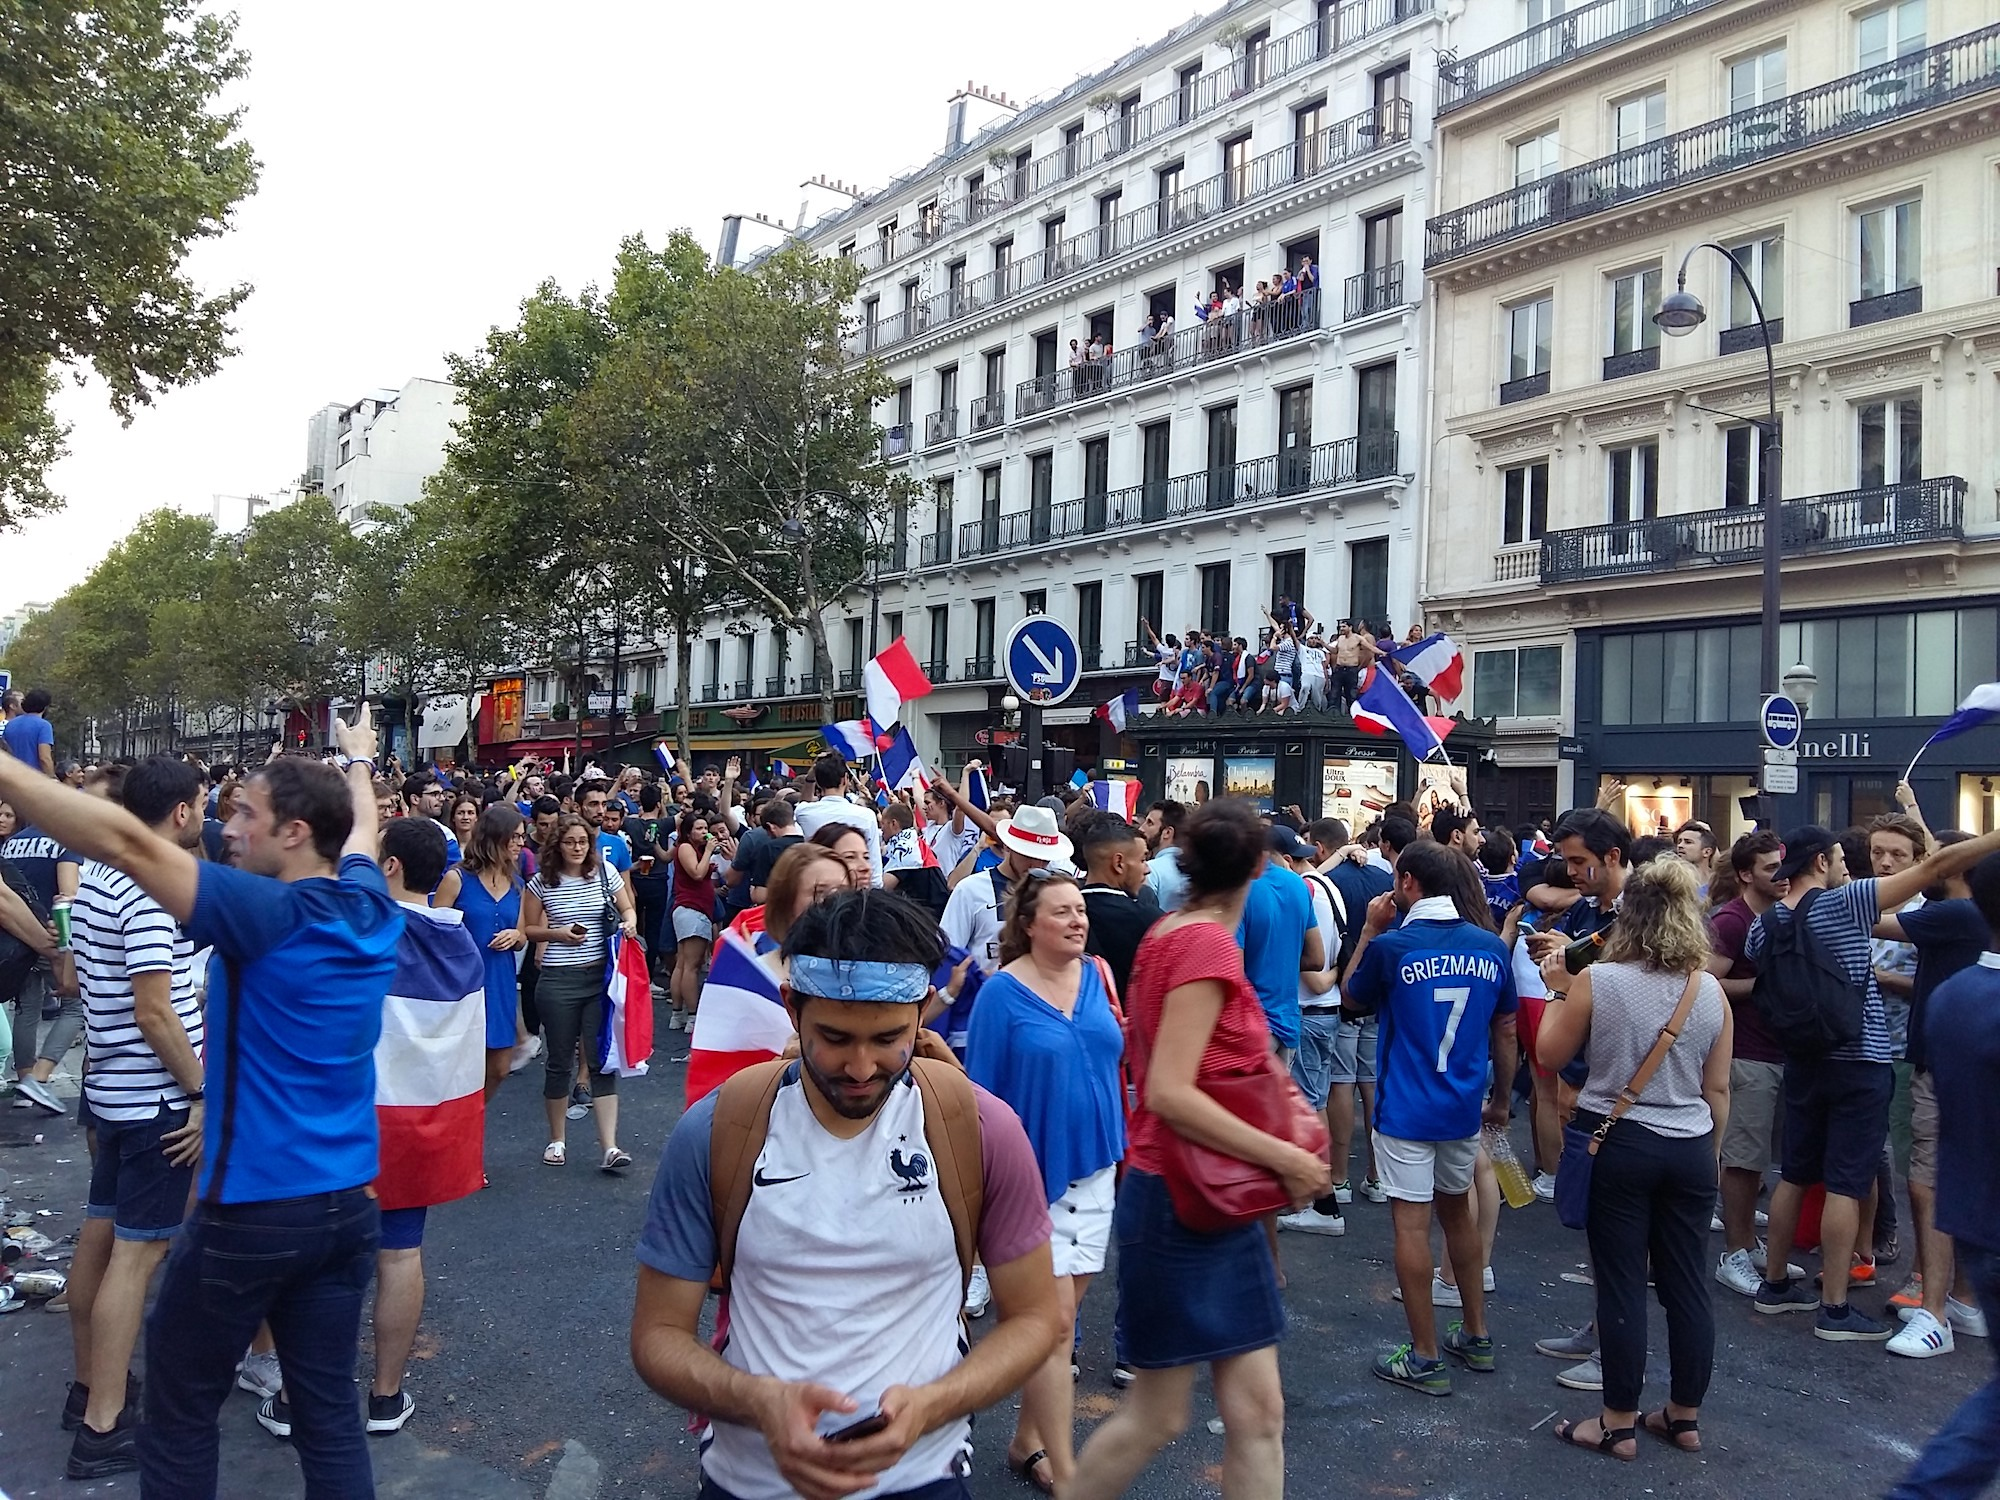 Football World Cup 2018, when the French team won, everyone ran to the streets, with French flags to celebrate.